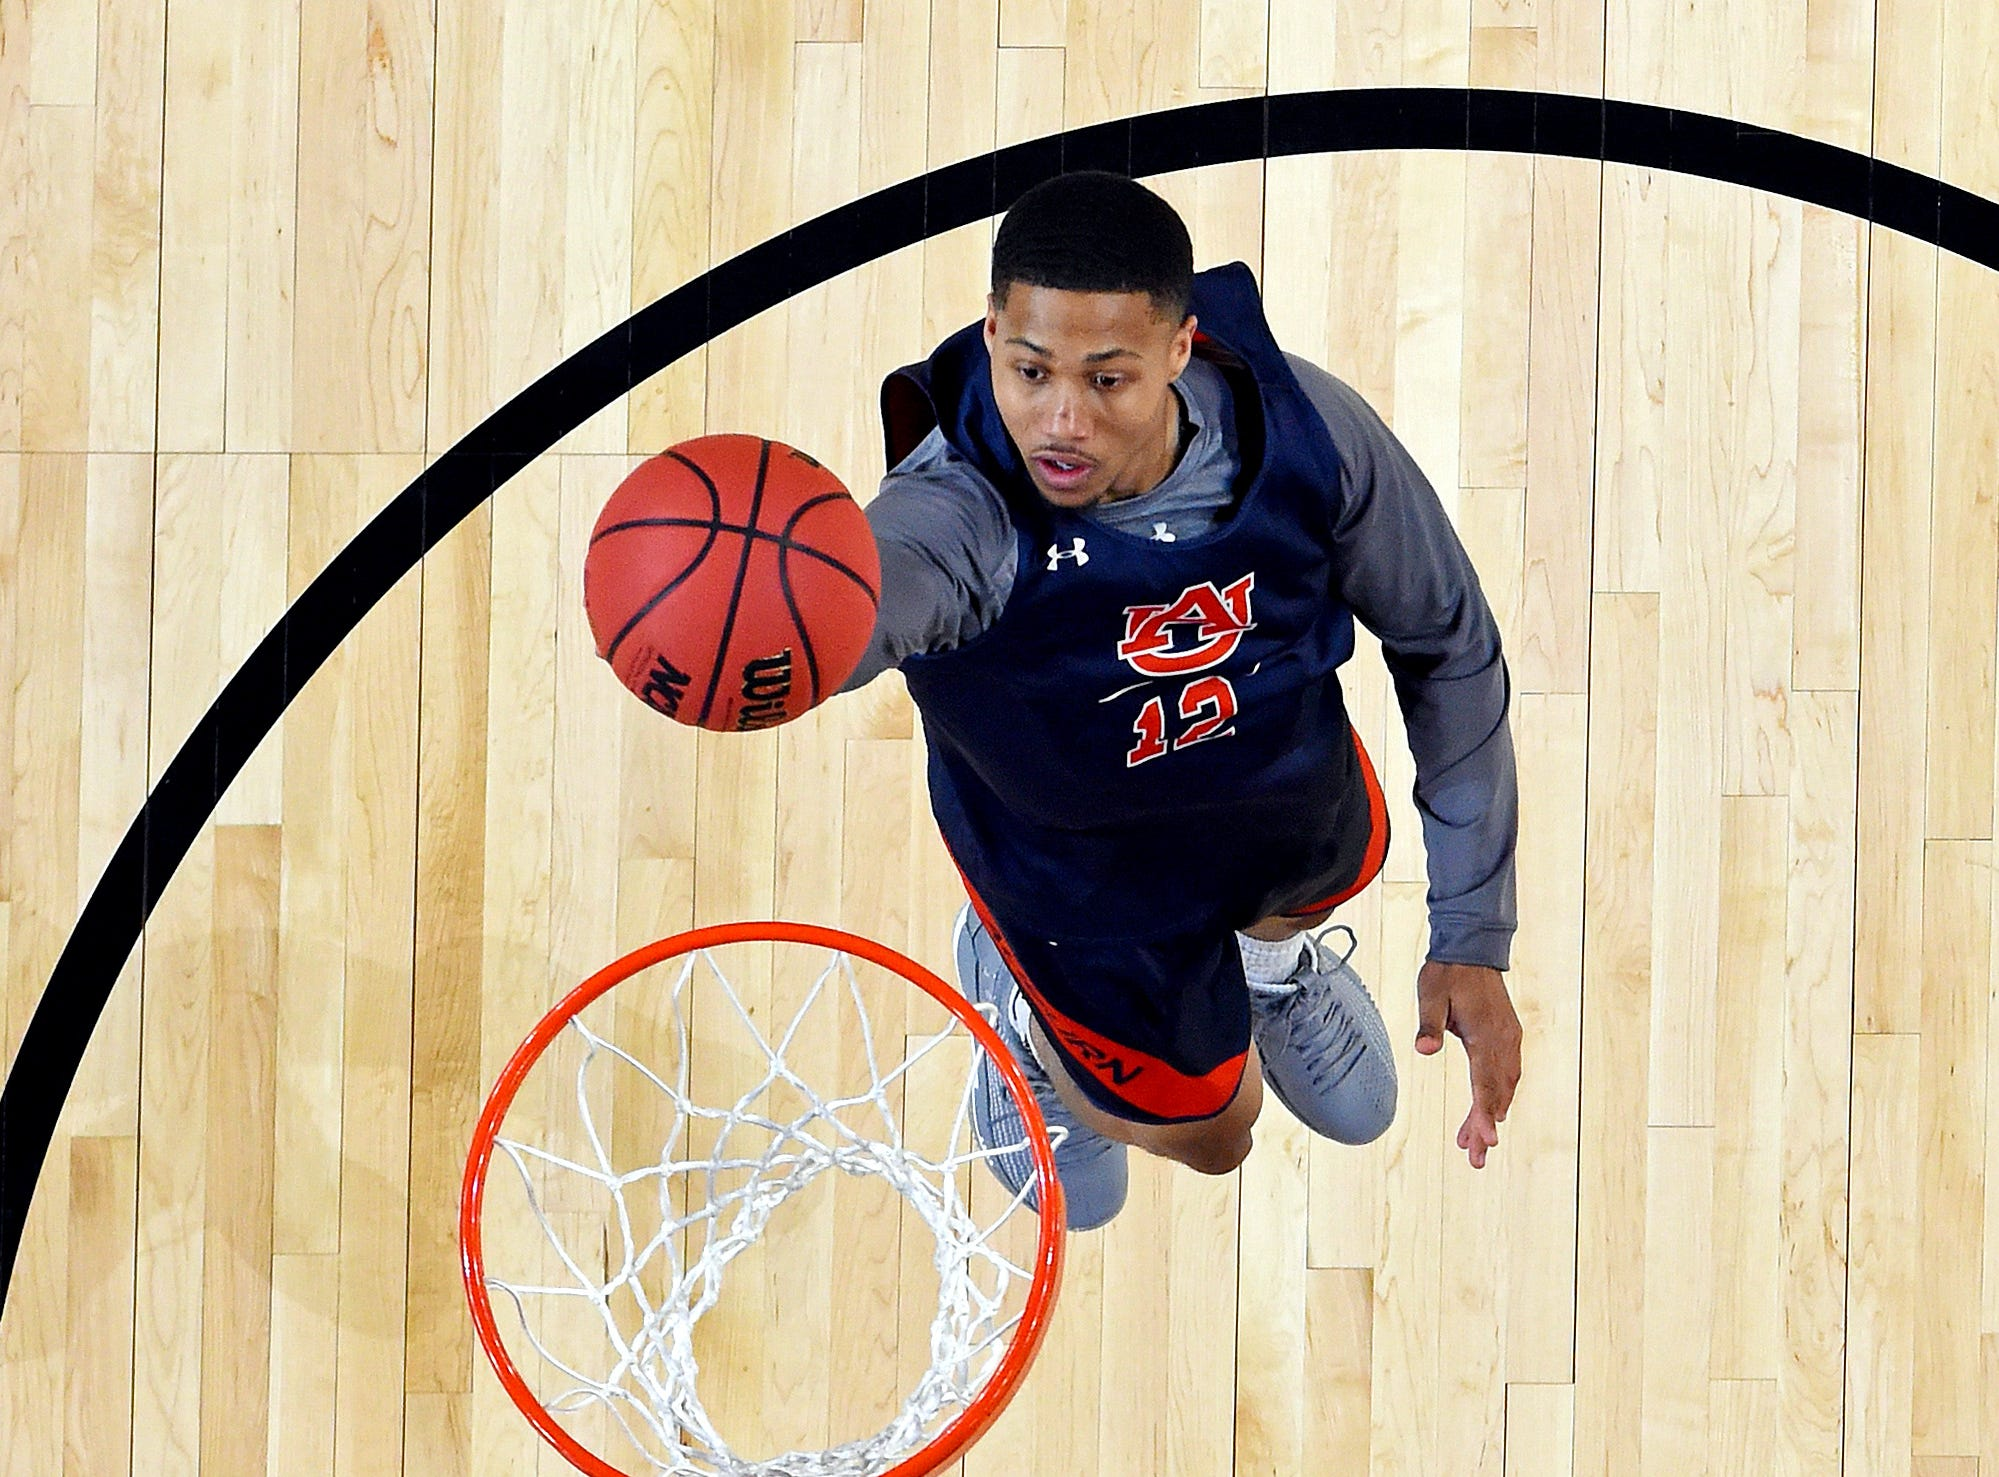 Apr 5, 2019; Minneapolis, MN, USA; Auburn Tigers guard J'Von McCormick (12) shoots the ball during practice for the 2019 men's Final Four at US Bank Stadium. Mandatory Credit: Bob Donnan-USA TODAY Sports